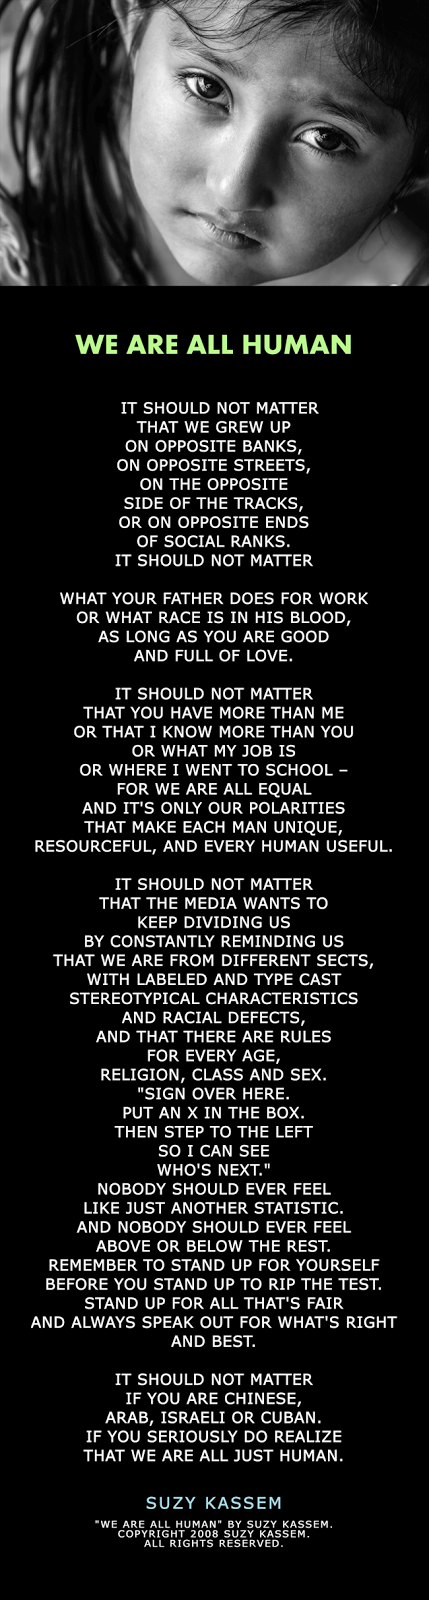 We Are All Human Poem